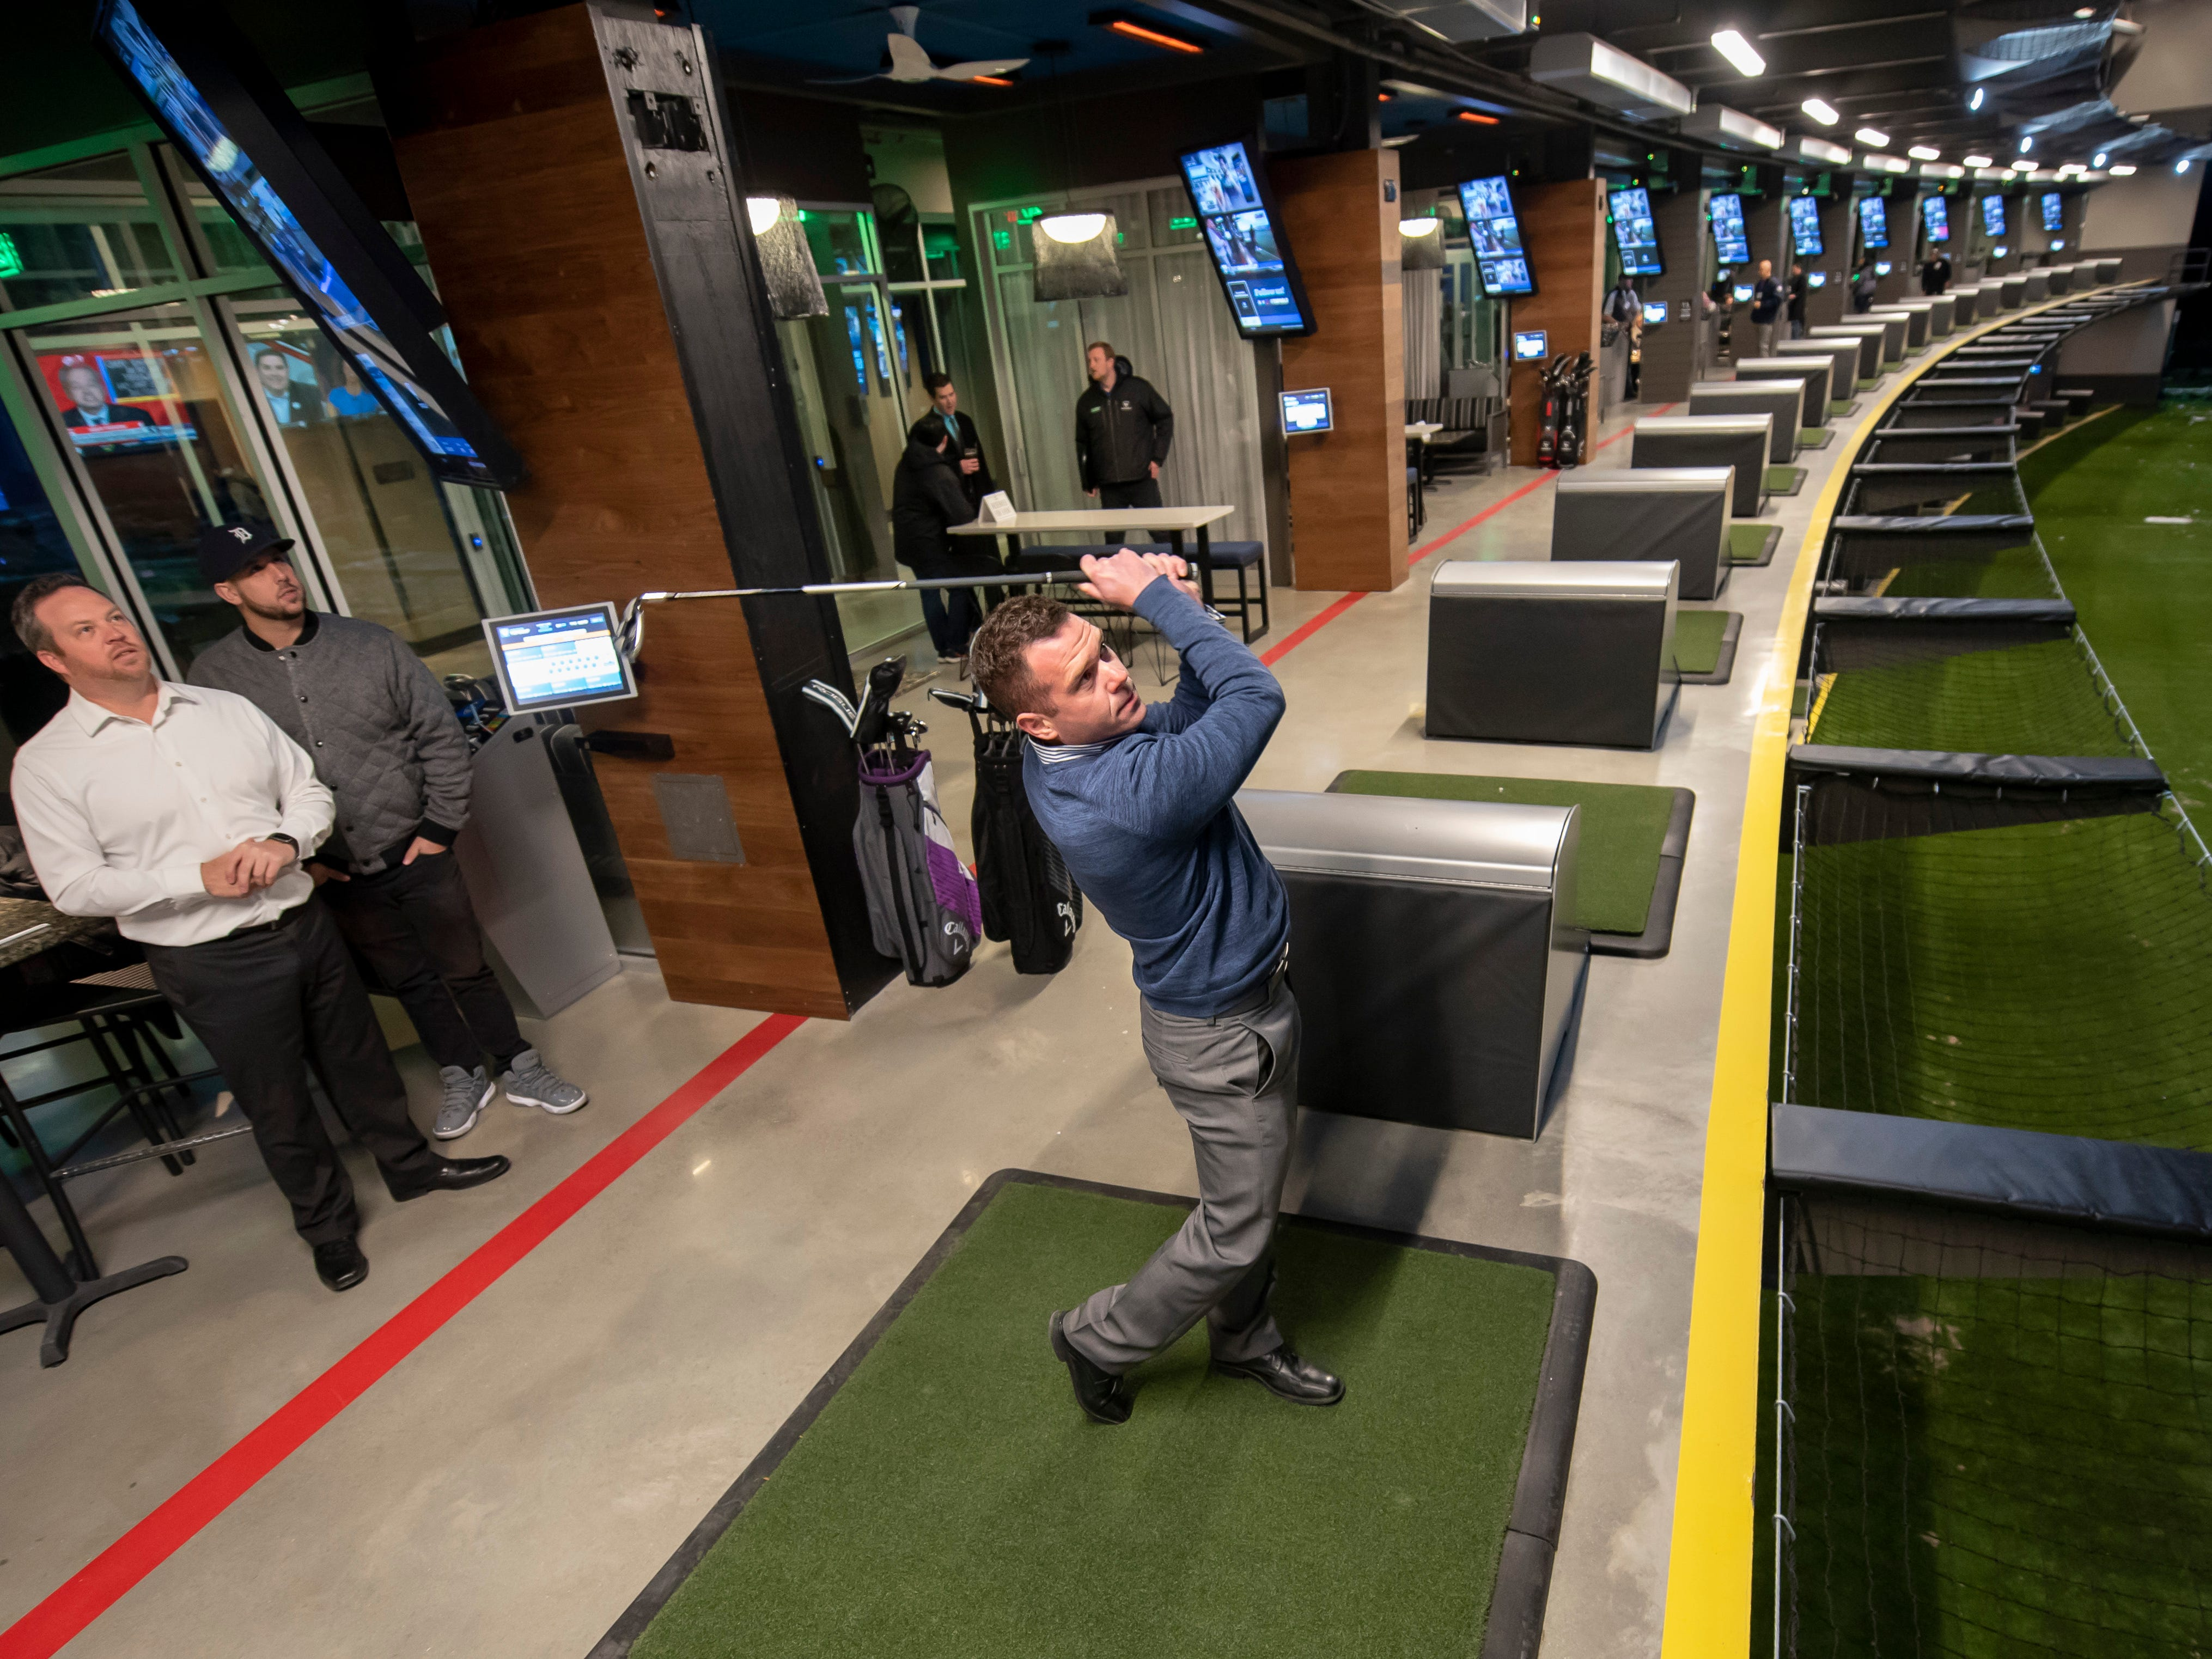 Brandon Bland, of Oxford, sends a ball into the driving range during a preview event at Topgolf, in Auburn Hills.